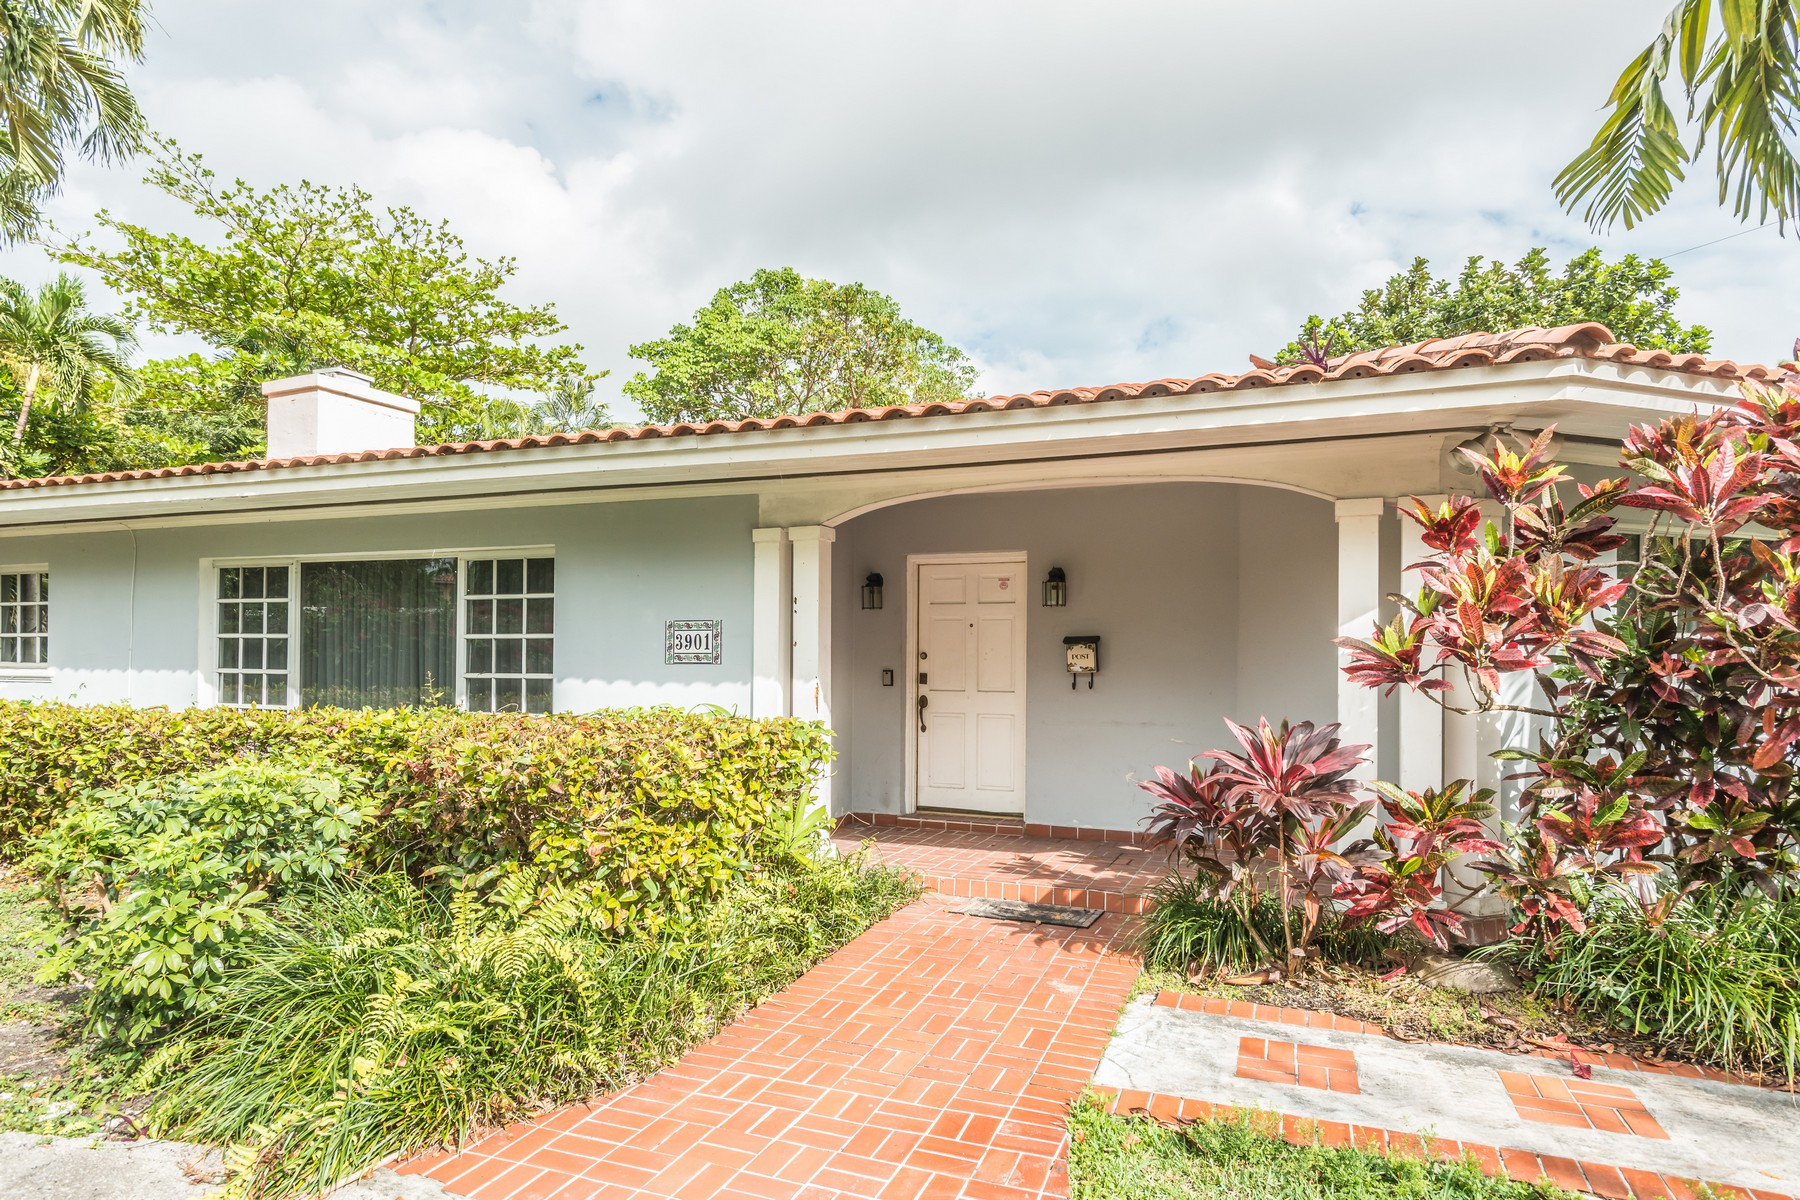 Single Family Home for Sale at 3901 Alhambra Cir Coral Gables, Florida, 33134 United States